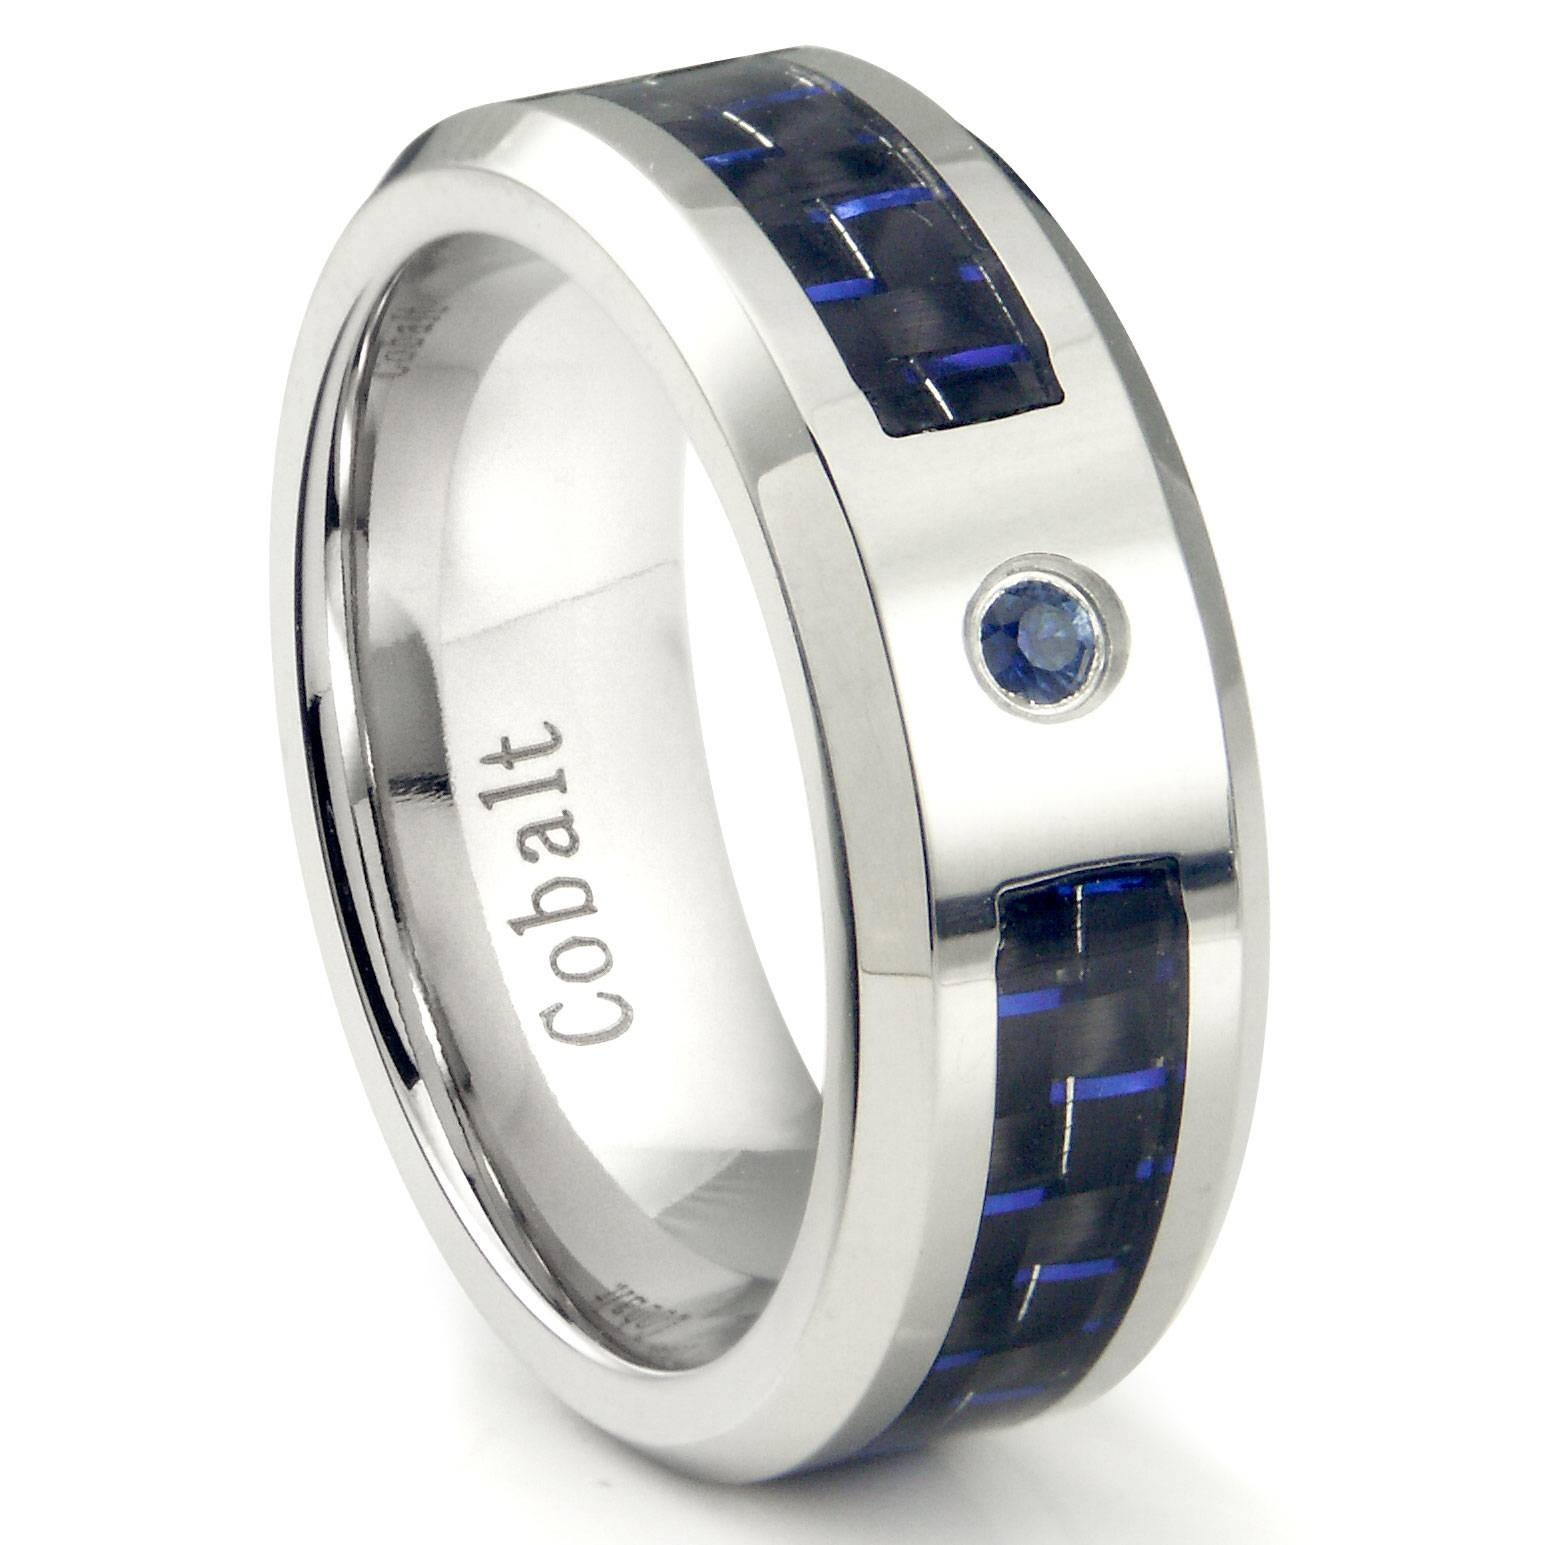 Cobalt Chrome 8Mm Blue Sapphire & Blue Carbon Fiber Inlay Wedding Pertaining To Men's Wedding Bands (View 5 of 15)